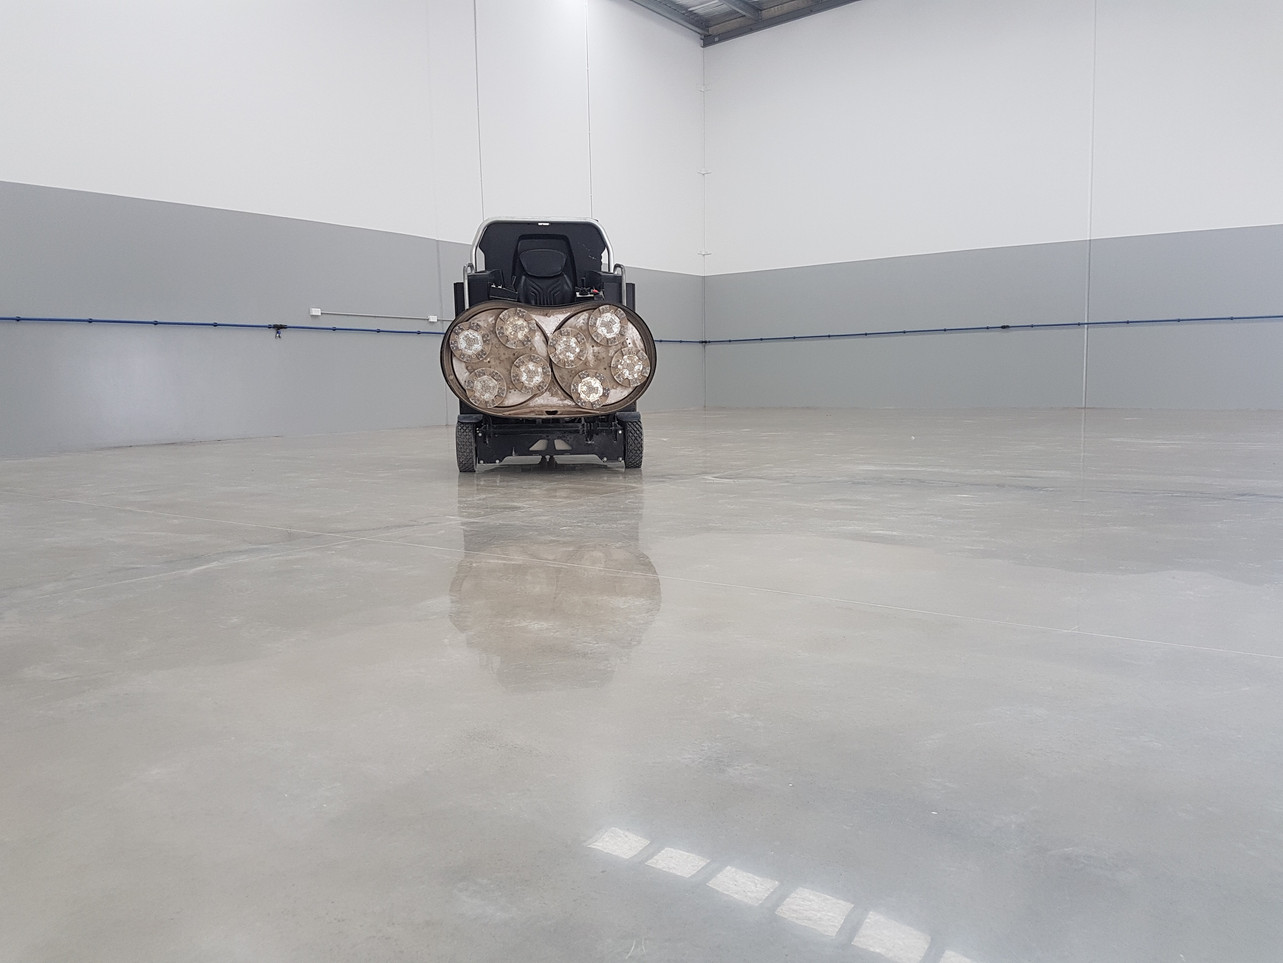 Superfloor Australia 1500ixt polished concrete floor brisbane